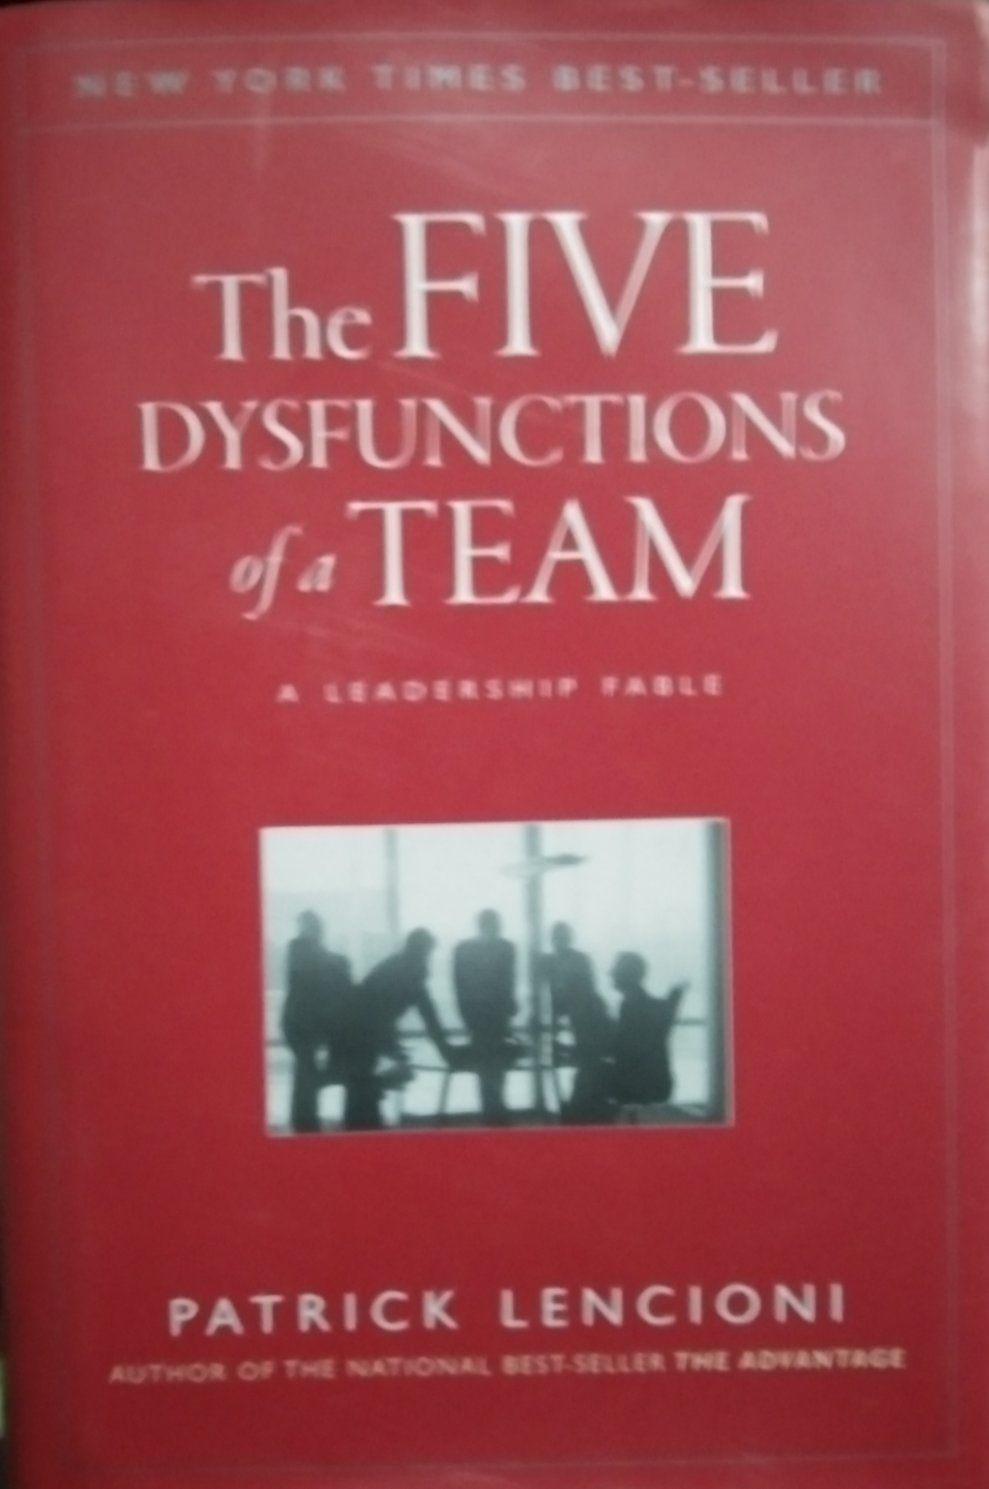 The five dysfunctions of a team by patrick lencion